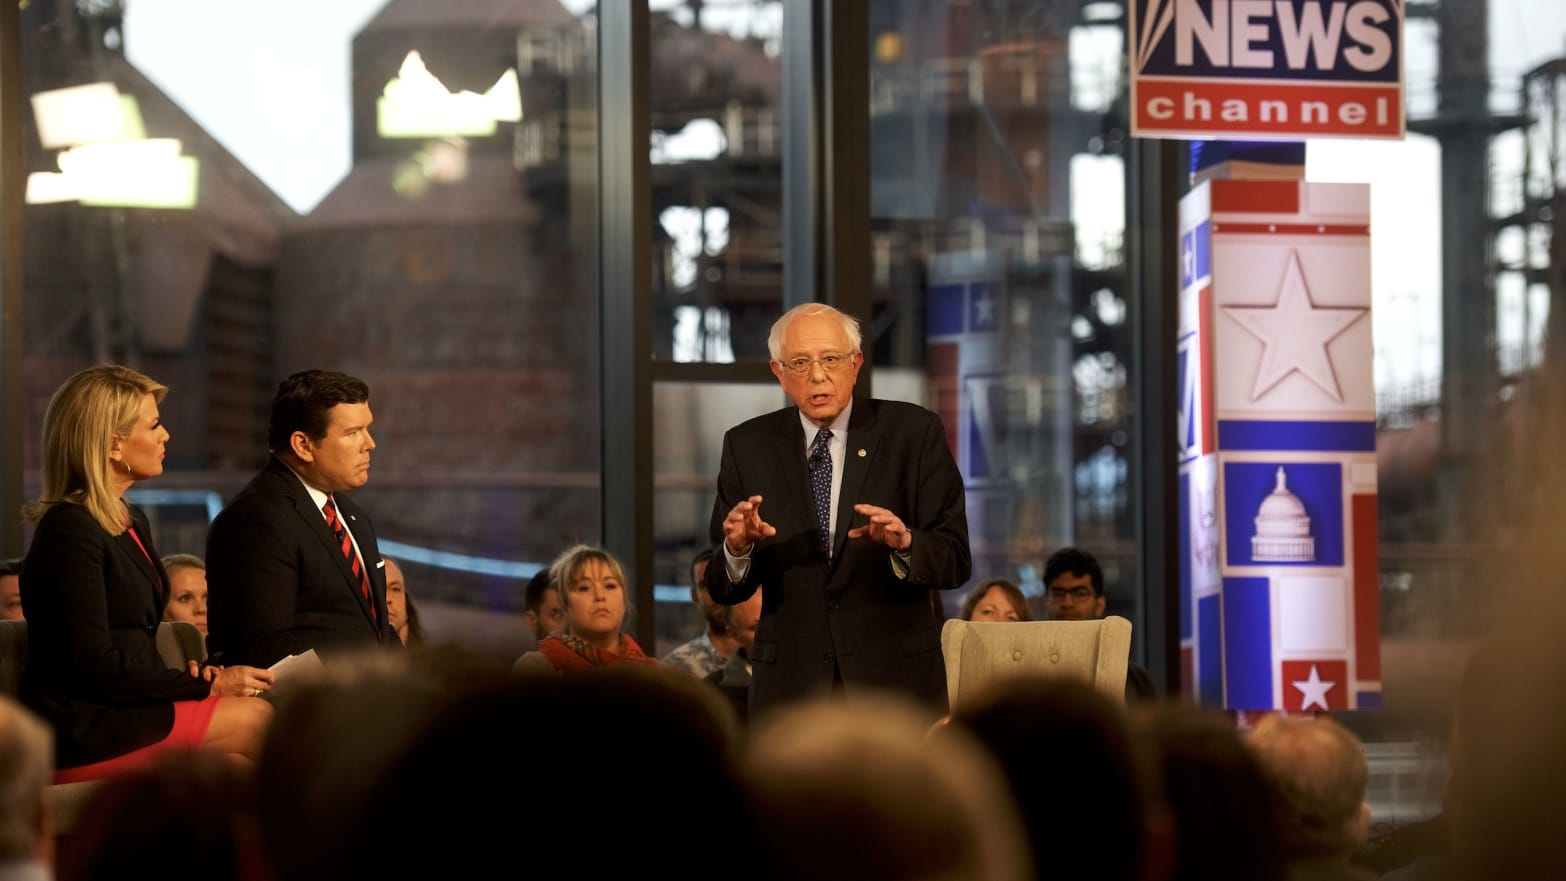 Bernie Sanders' Fox News Town Hall Was a Ratings Smash, as Pete Buttigieg and Other Democrats Consider One.